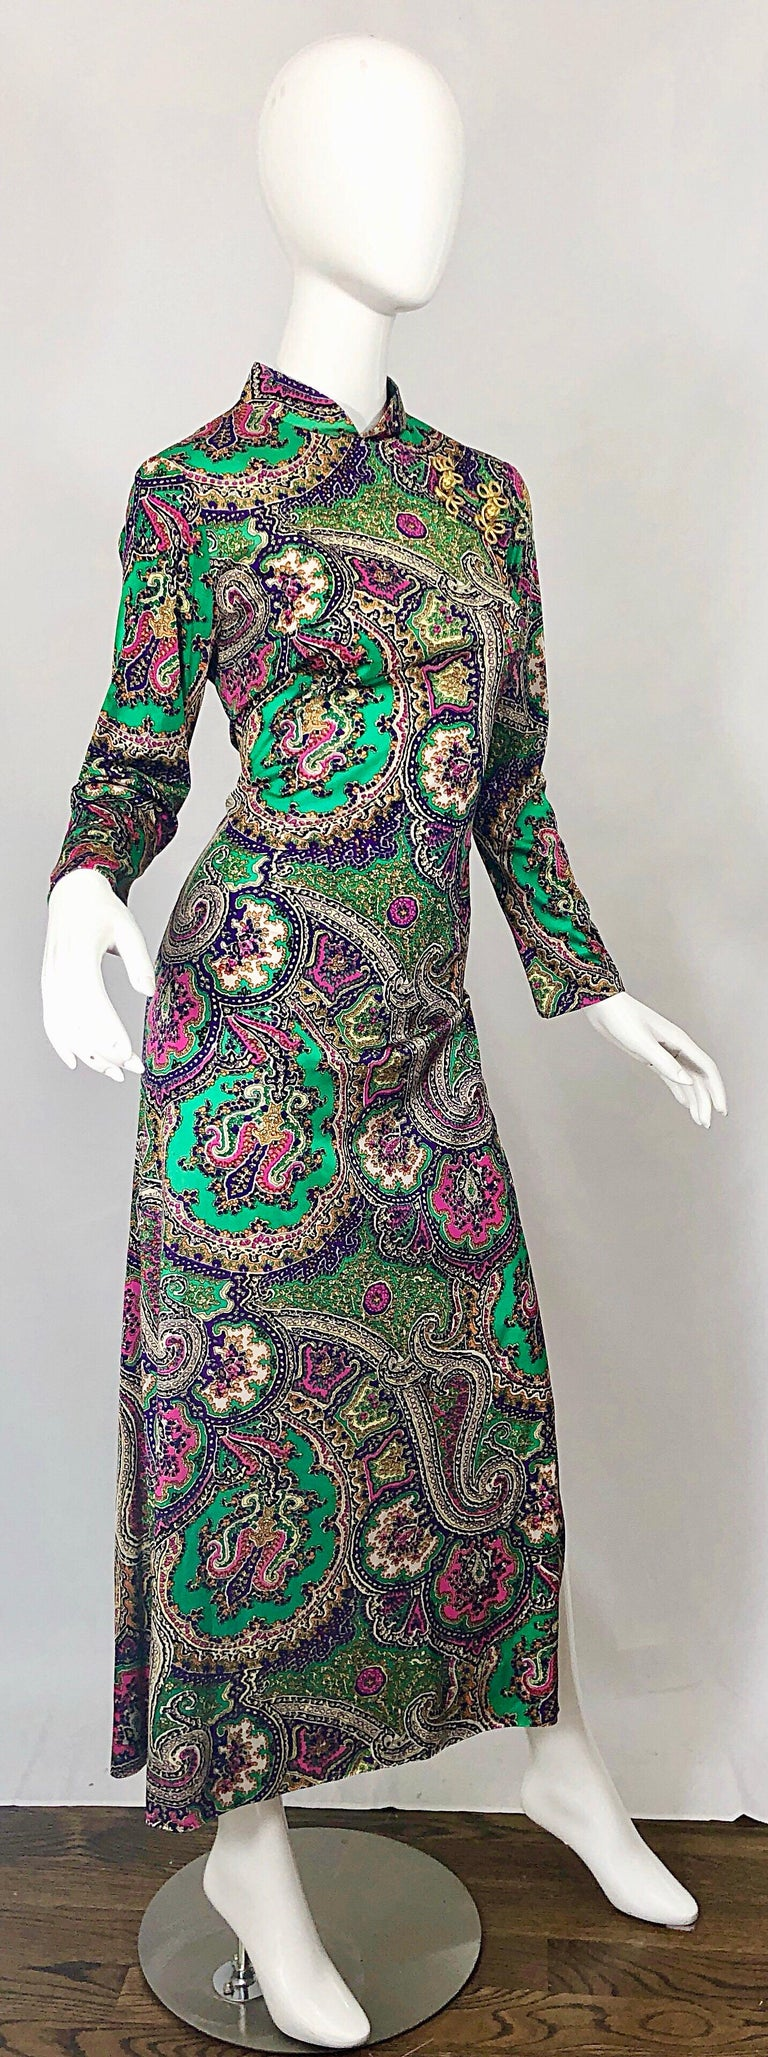 1970s Cheongsam Inspired Colorful Paisley Print Jersey Long Sleeve Maxi Dress For Sale 2